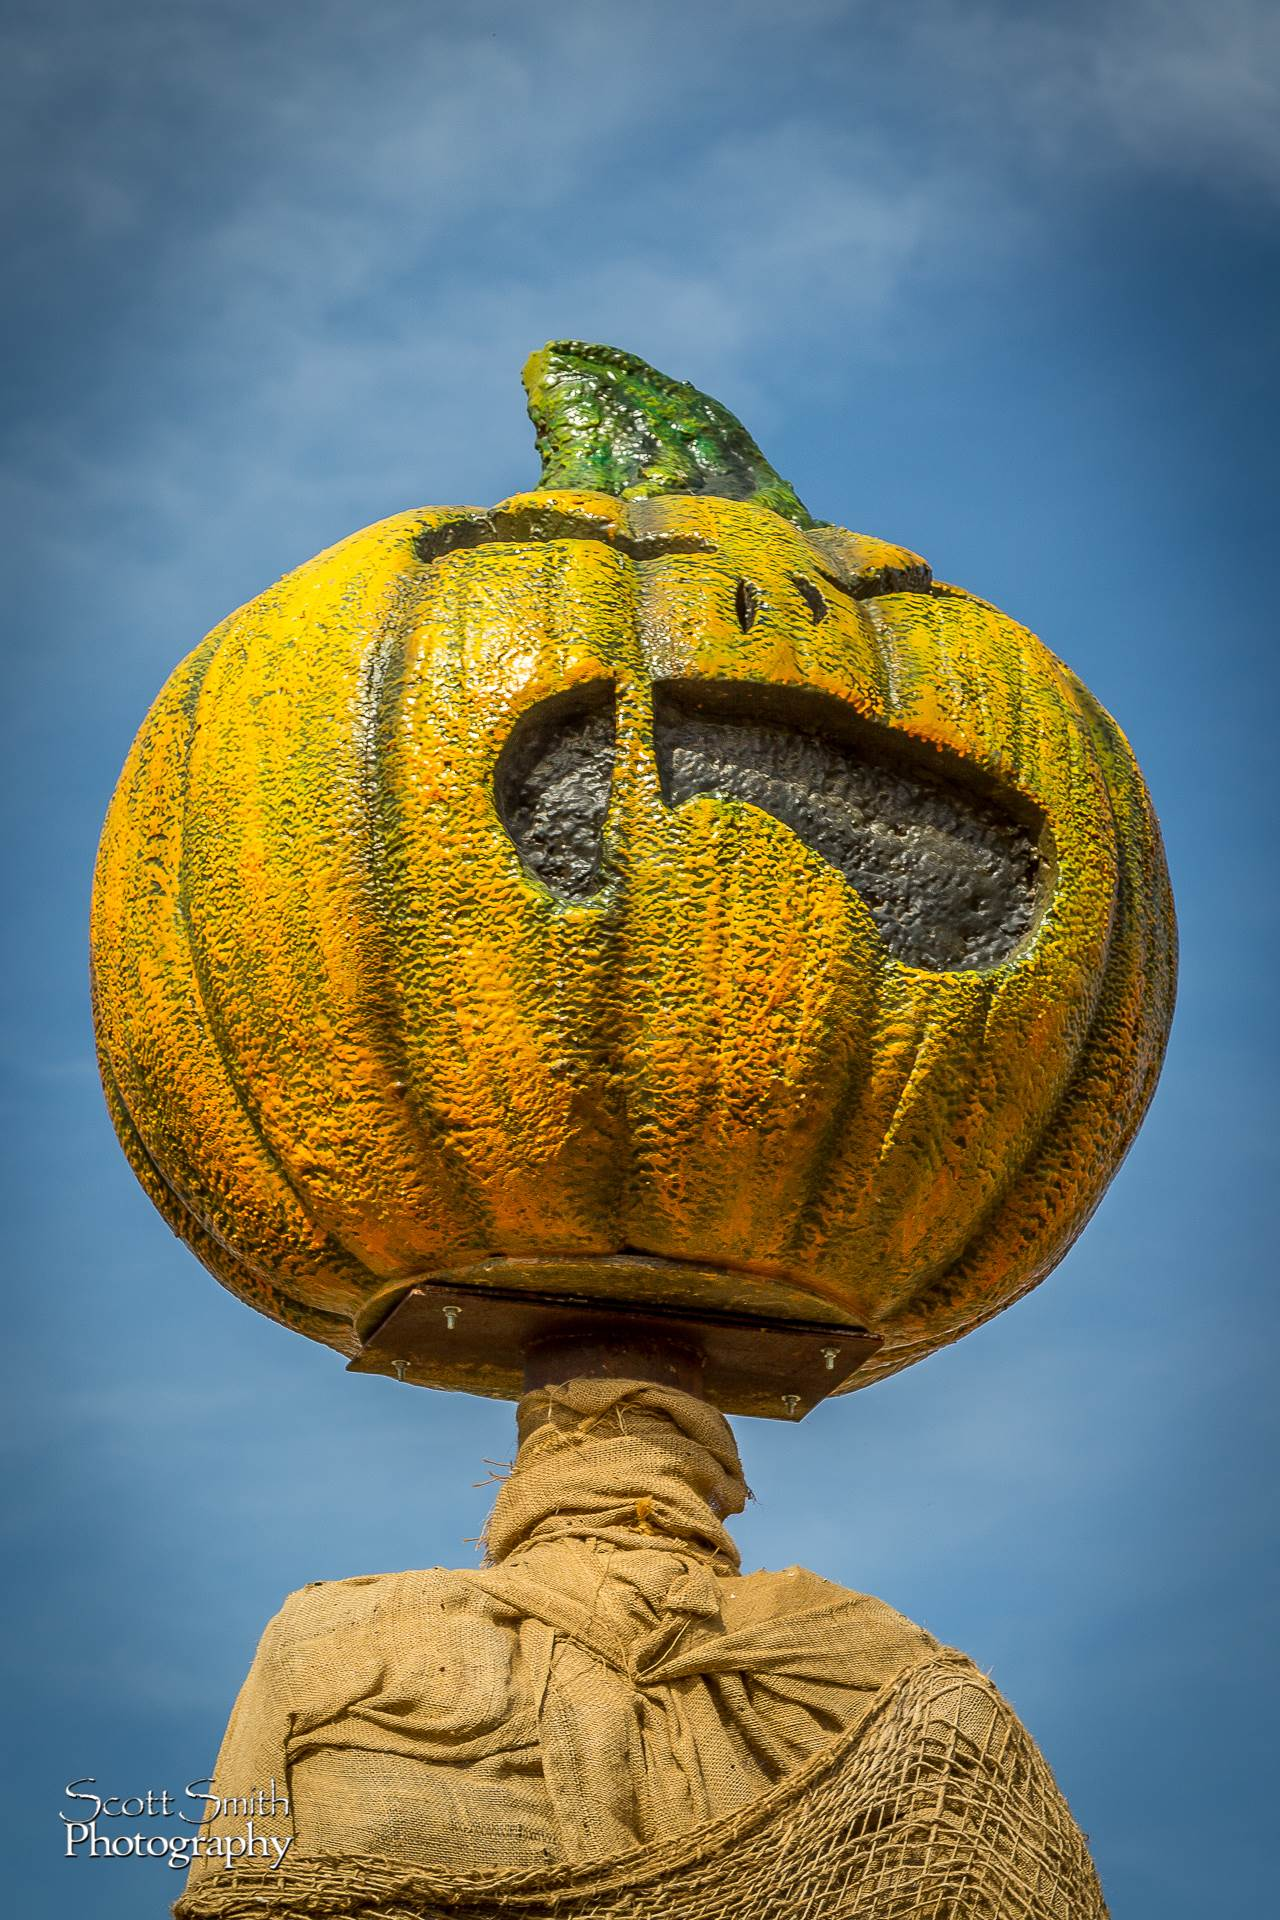 Scary Pumpkin Figure - Anderson Farms, Erie Colorado. by D Scott Smith